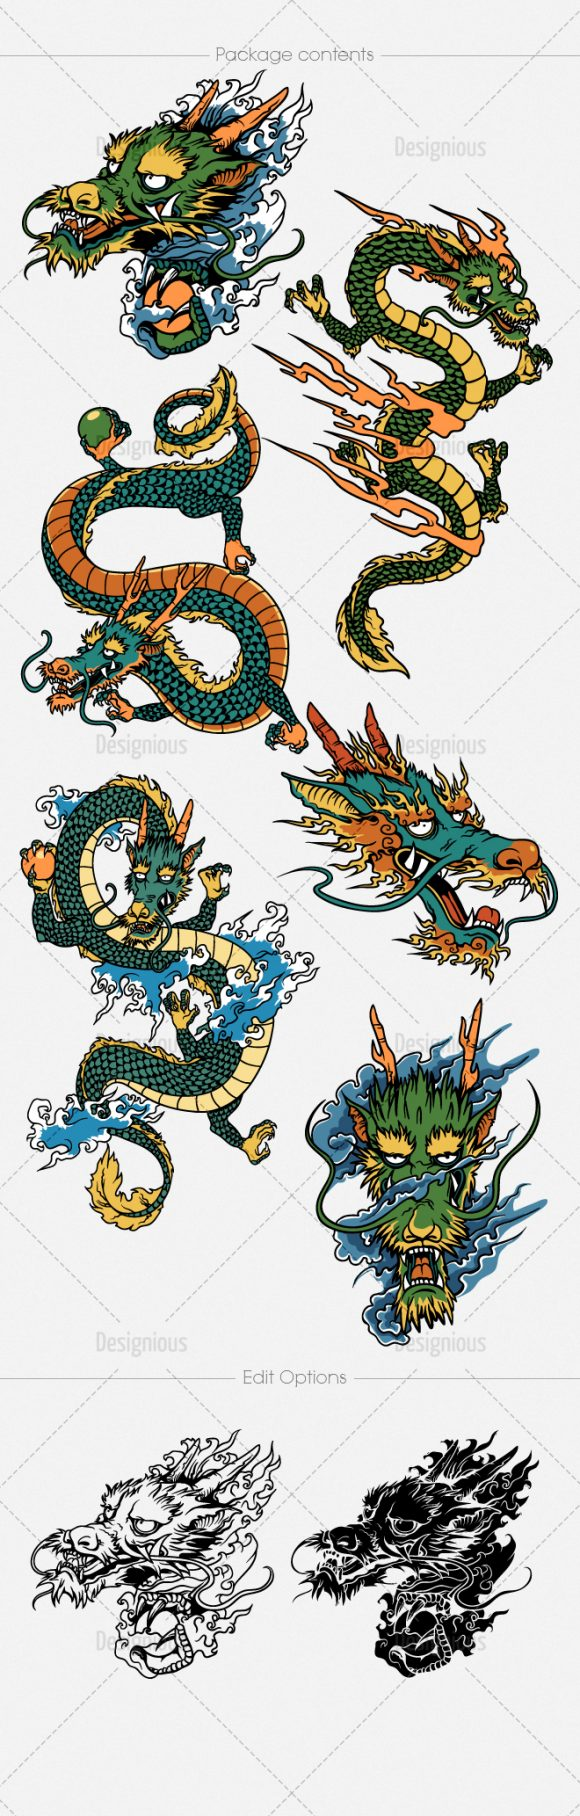 Dragons Vector Pack 2 6